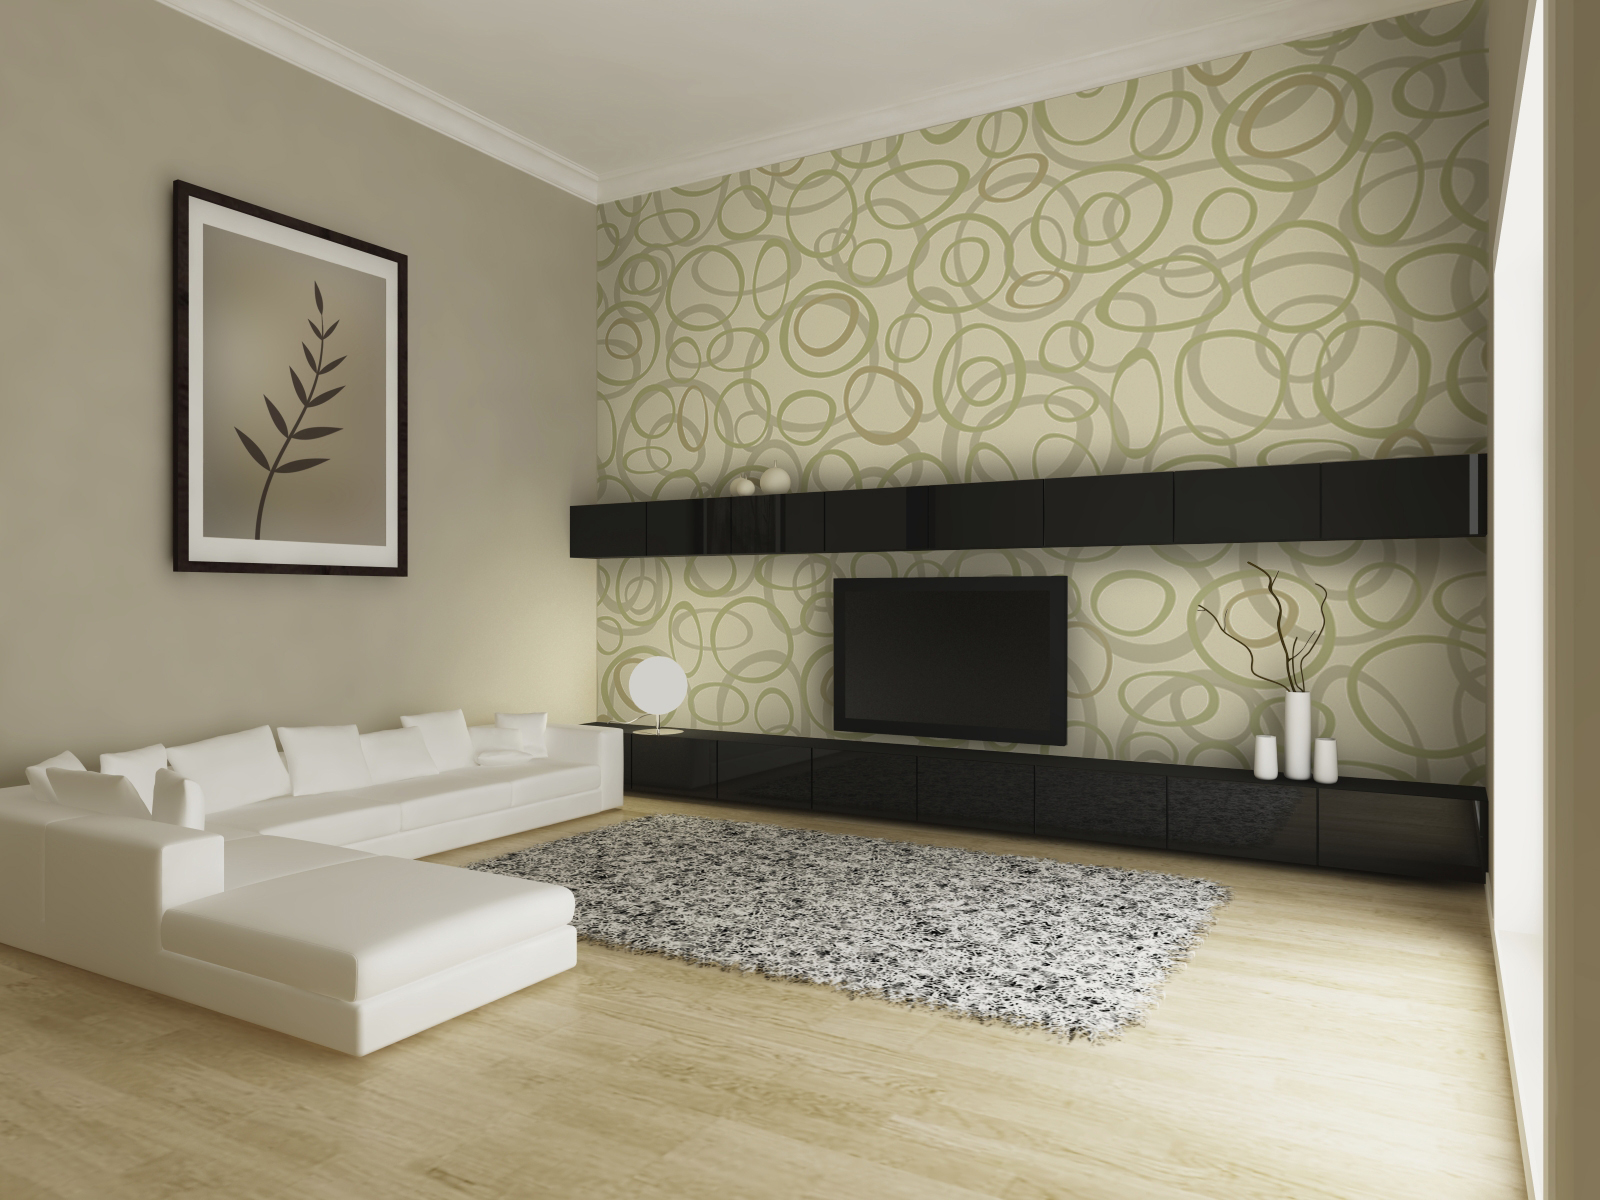 Interior design wallpaper 1600x1200 81460 for Decorator interior